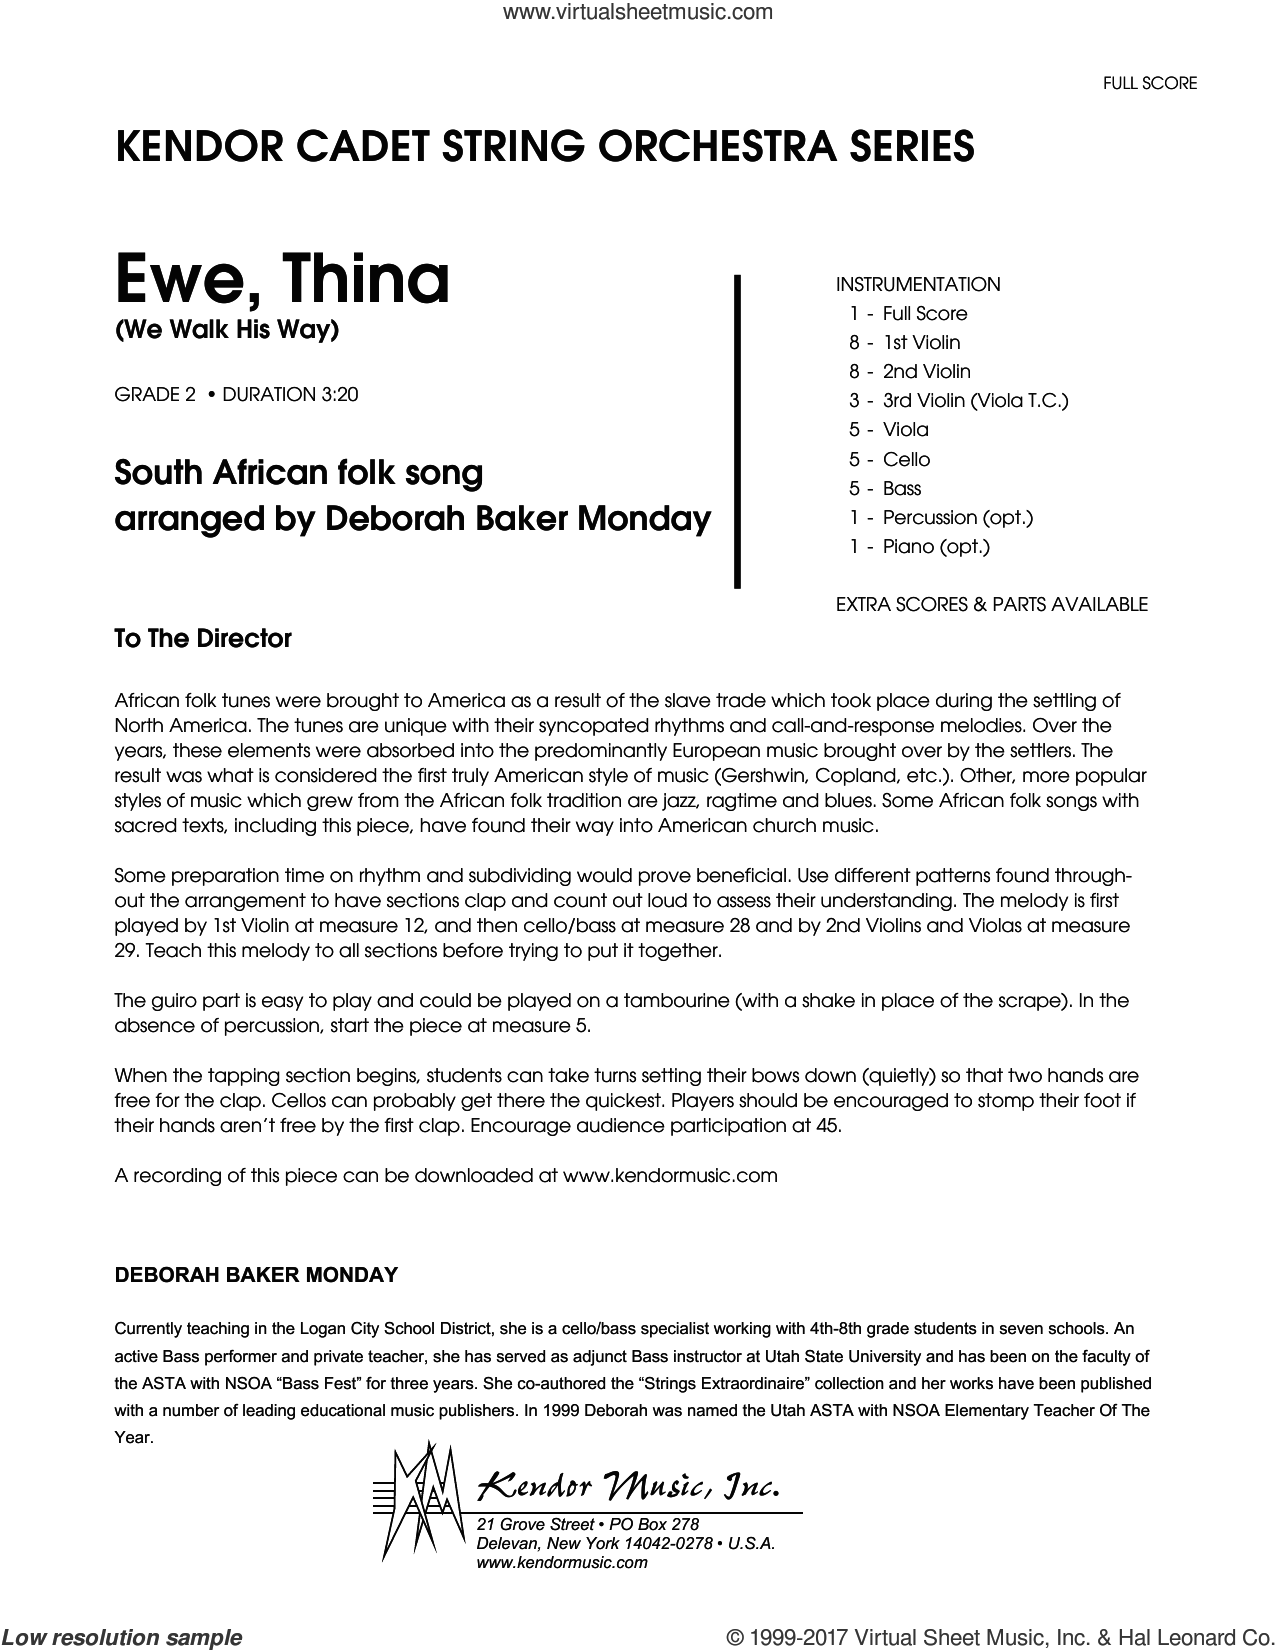 Ewe, Thina (We Walk His Way) (COMPLETE) sheet music for orchestra by Deborah Baker Monday and South African folk song, intermediate skill level